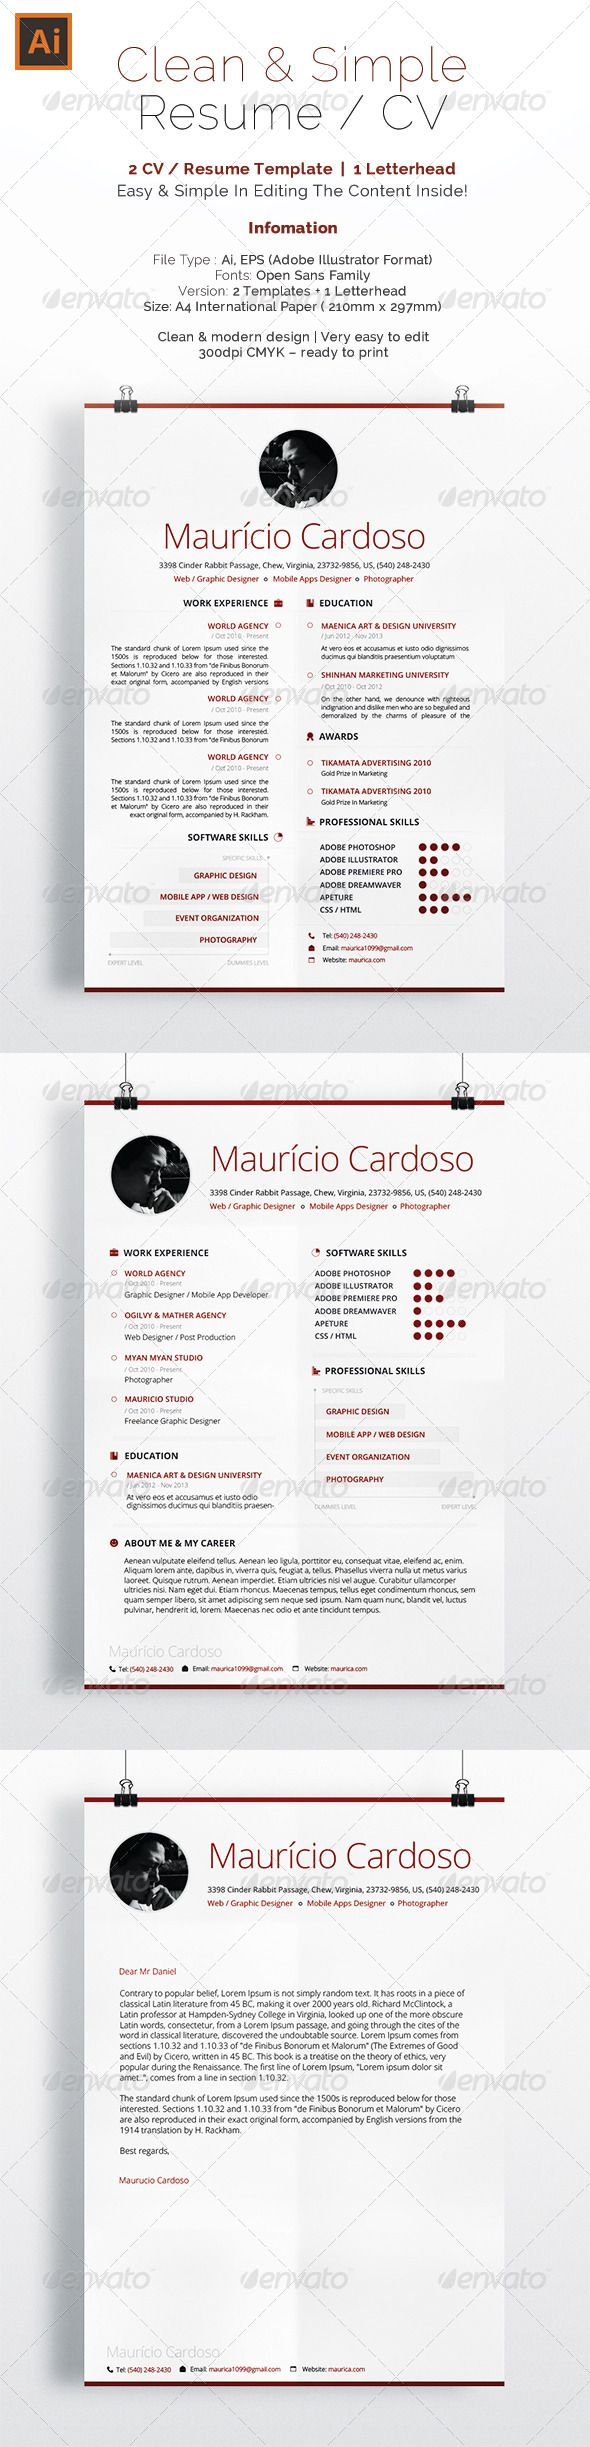 What Font To Use On Resume Simple & Clean Resume  Cv  Resume Cv Fonts And Simple Resume Template